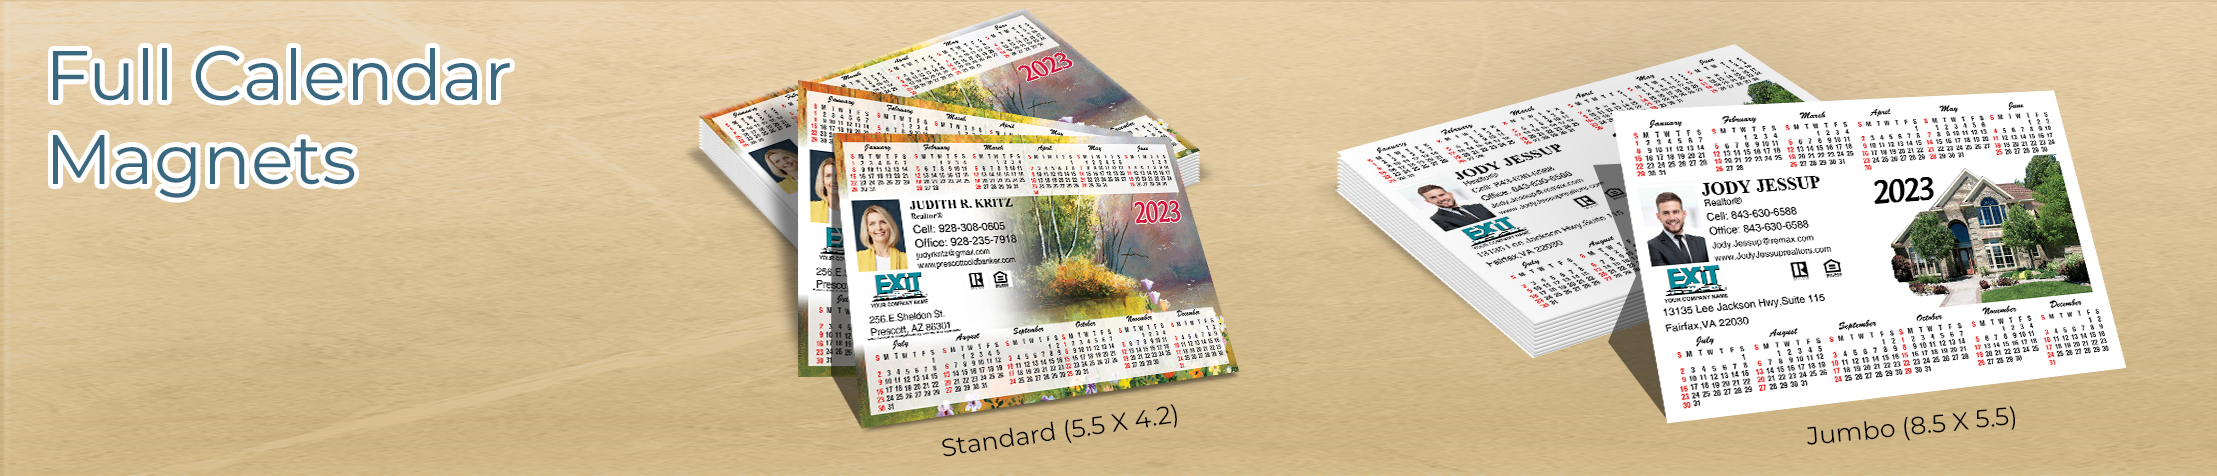 Exit Realty Full Calendar Magnets - Exit Realty approved vendor 2019 calendars in Standard or Jumbo Size | BestPrintBuy.com